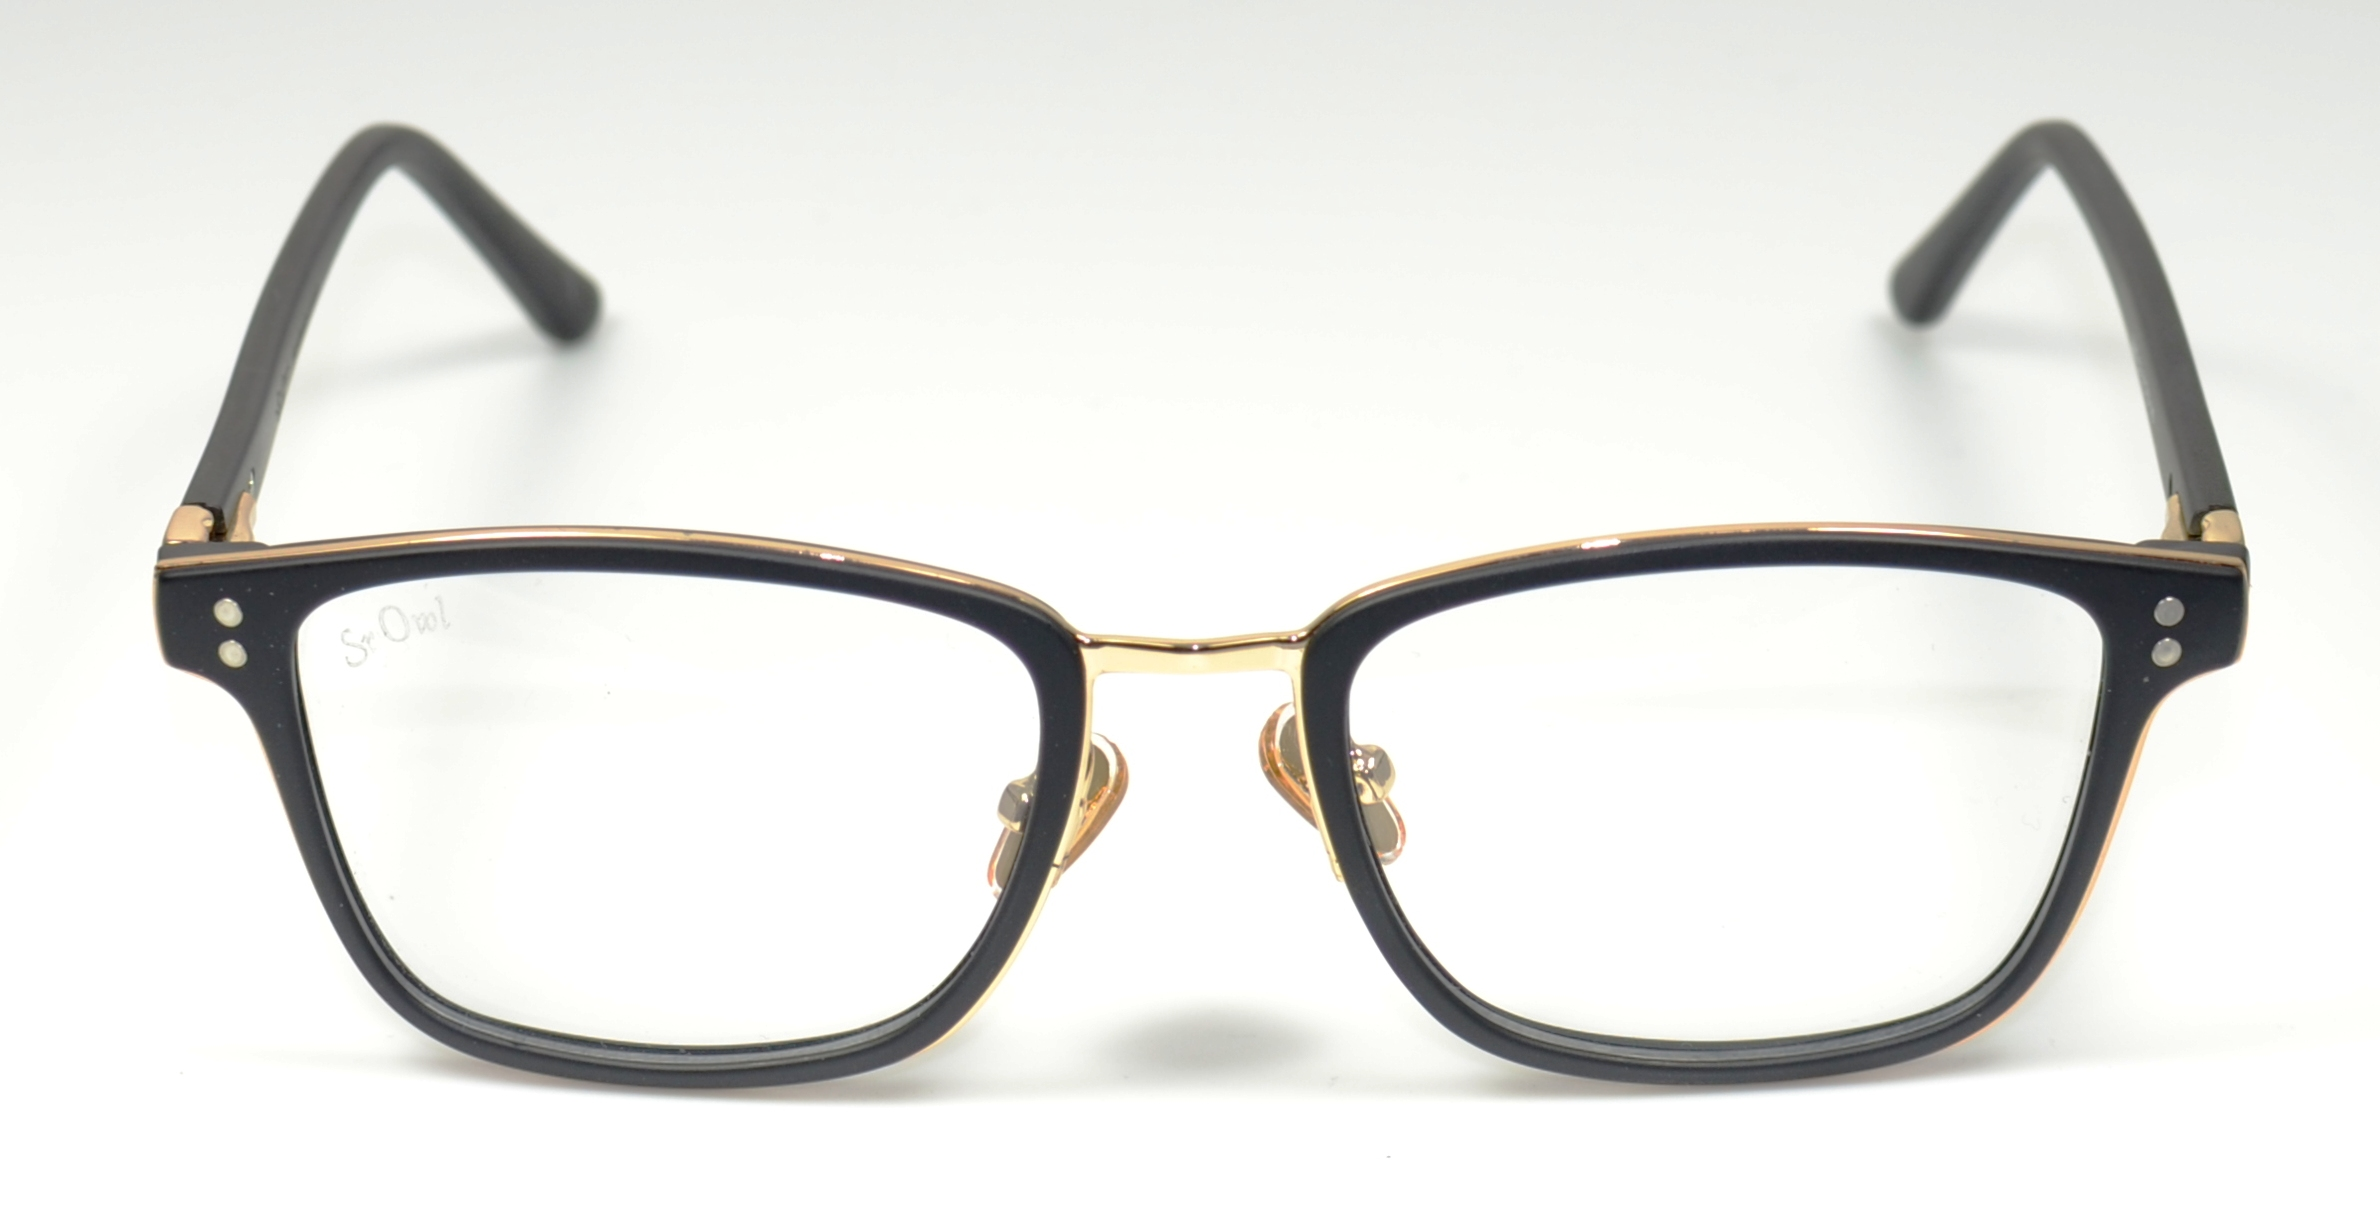 SR OWL 2065 C2 51-19-140 BLACK ACETATE-GOLDMETAL SP DESIGN F